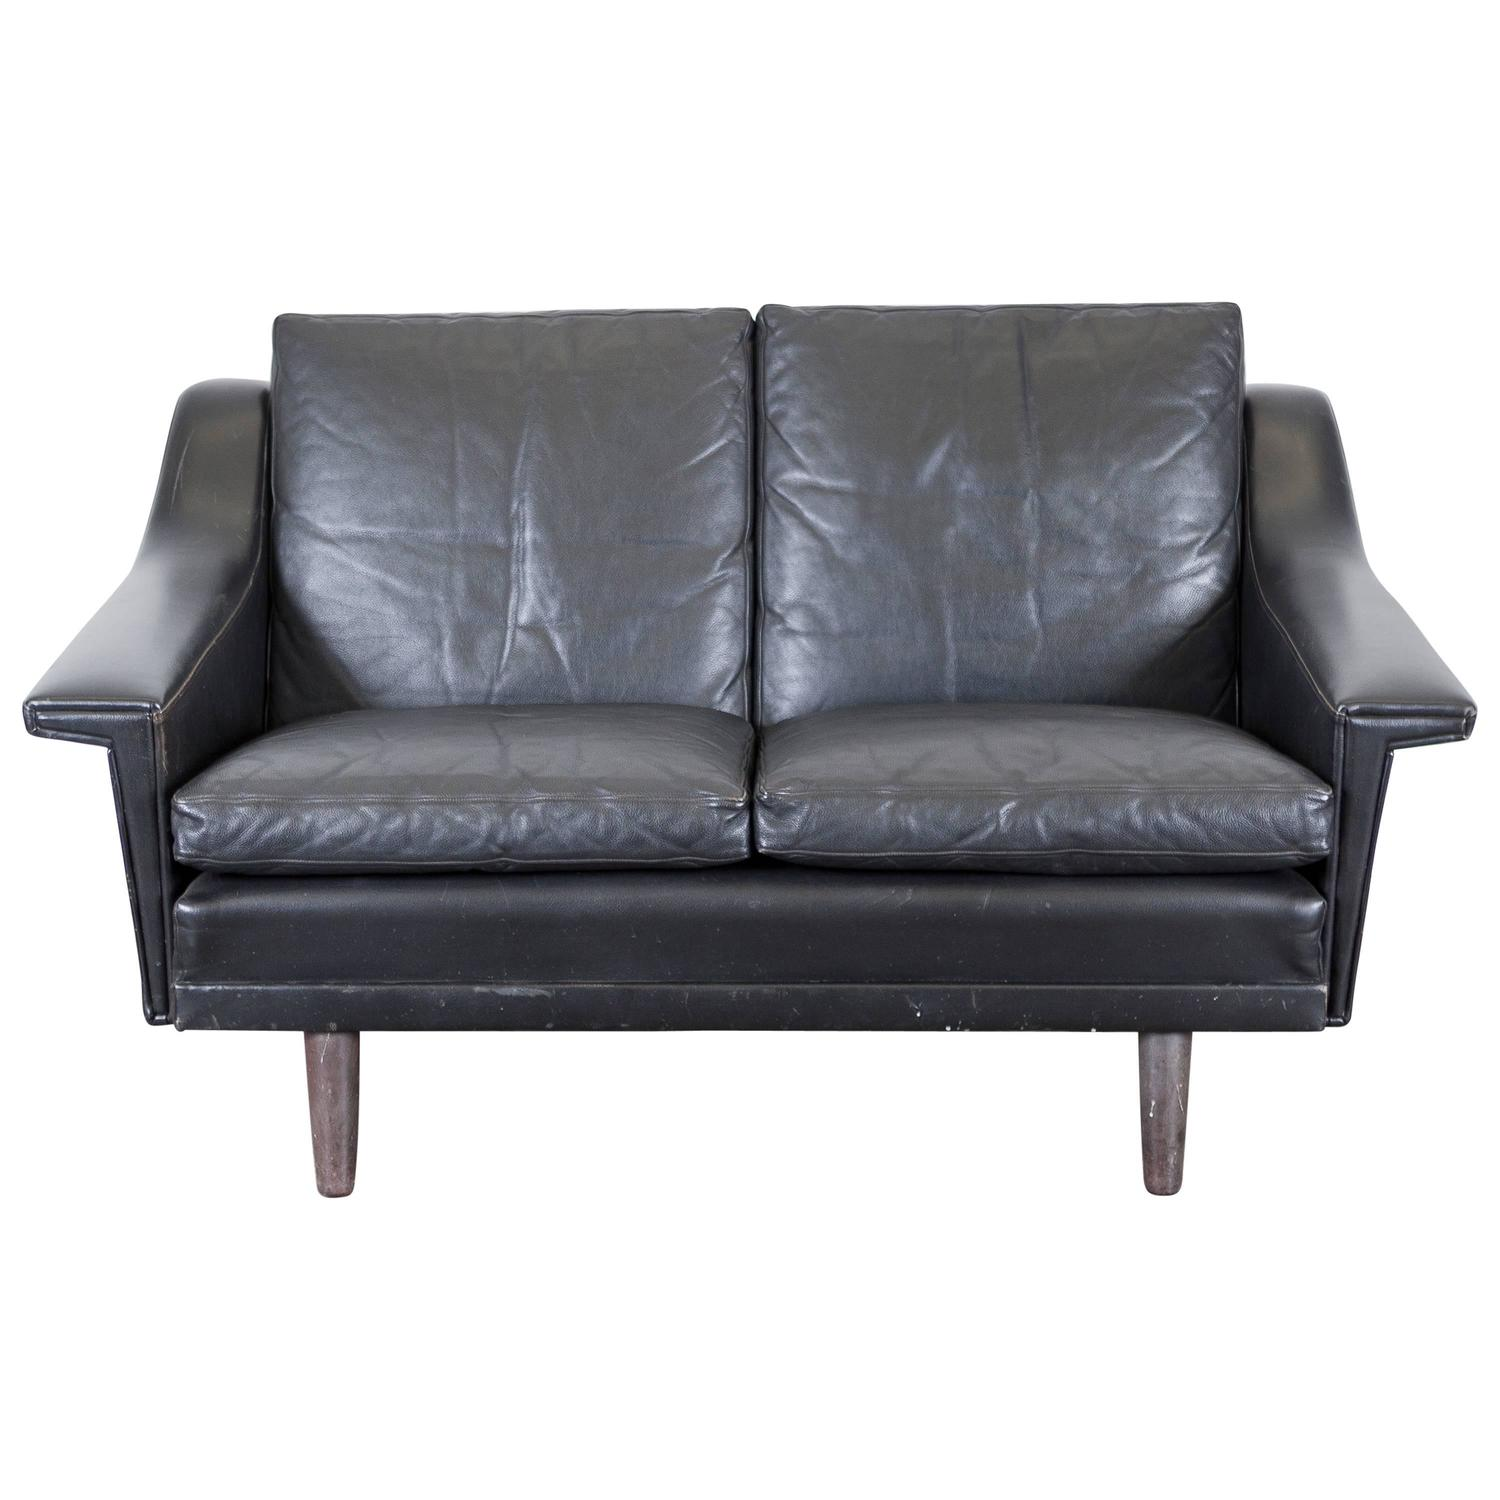 Danish mid century black leather settee for sale at 1stdibs for Settees for sale